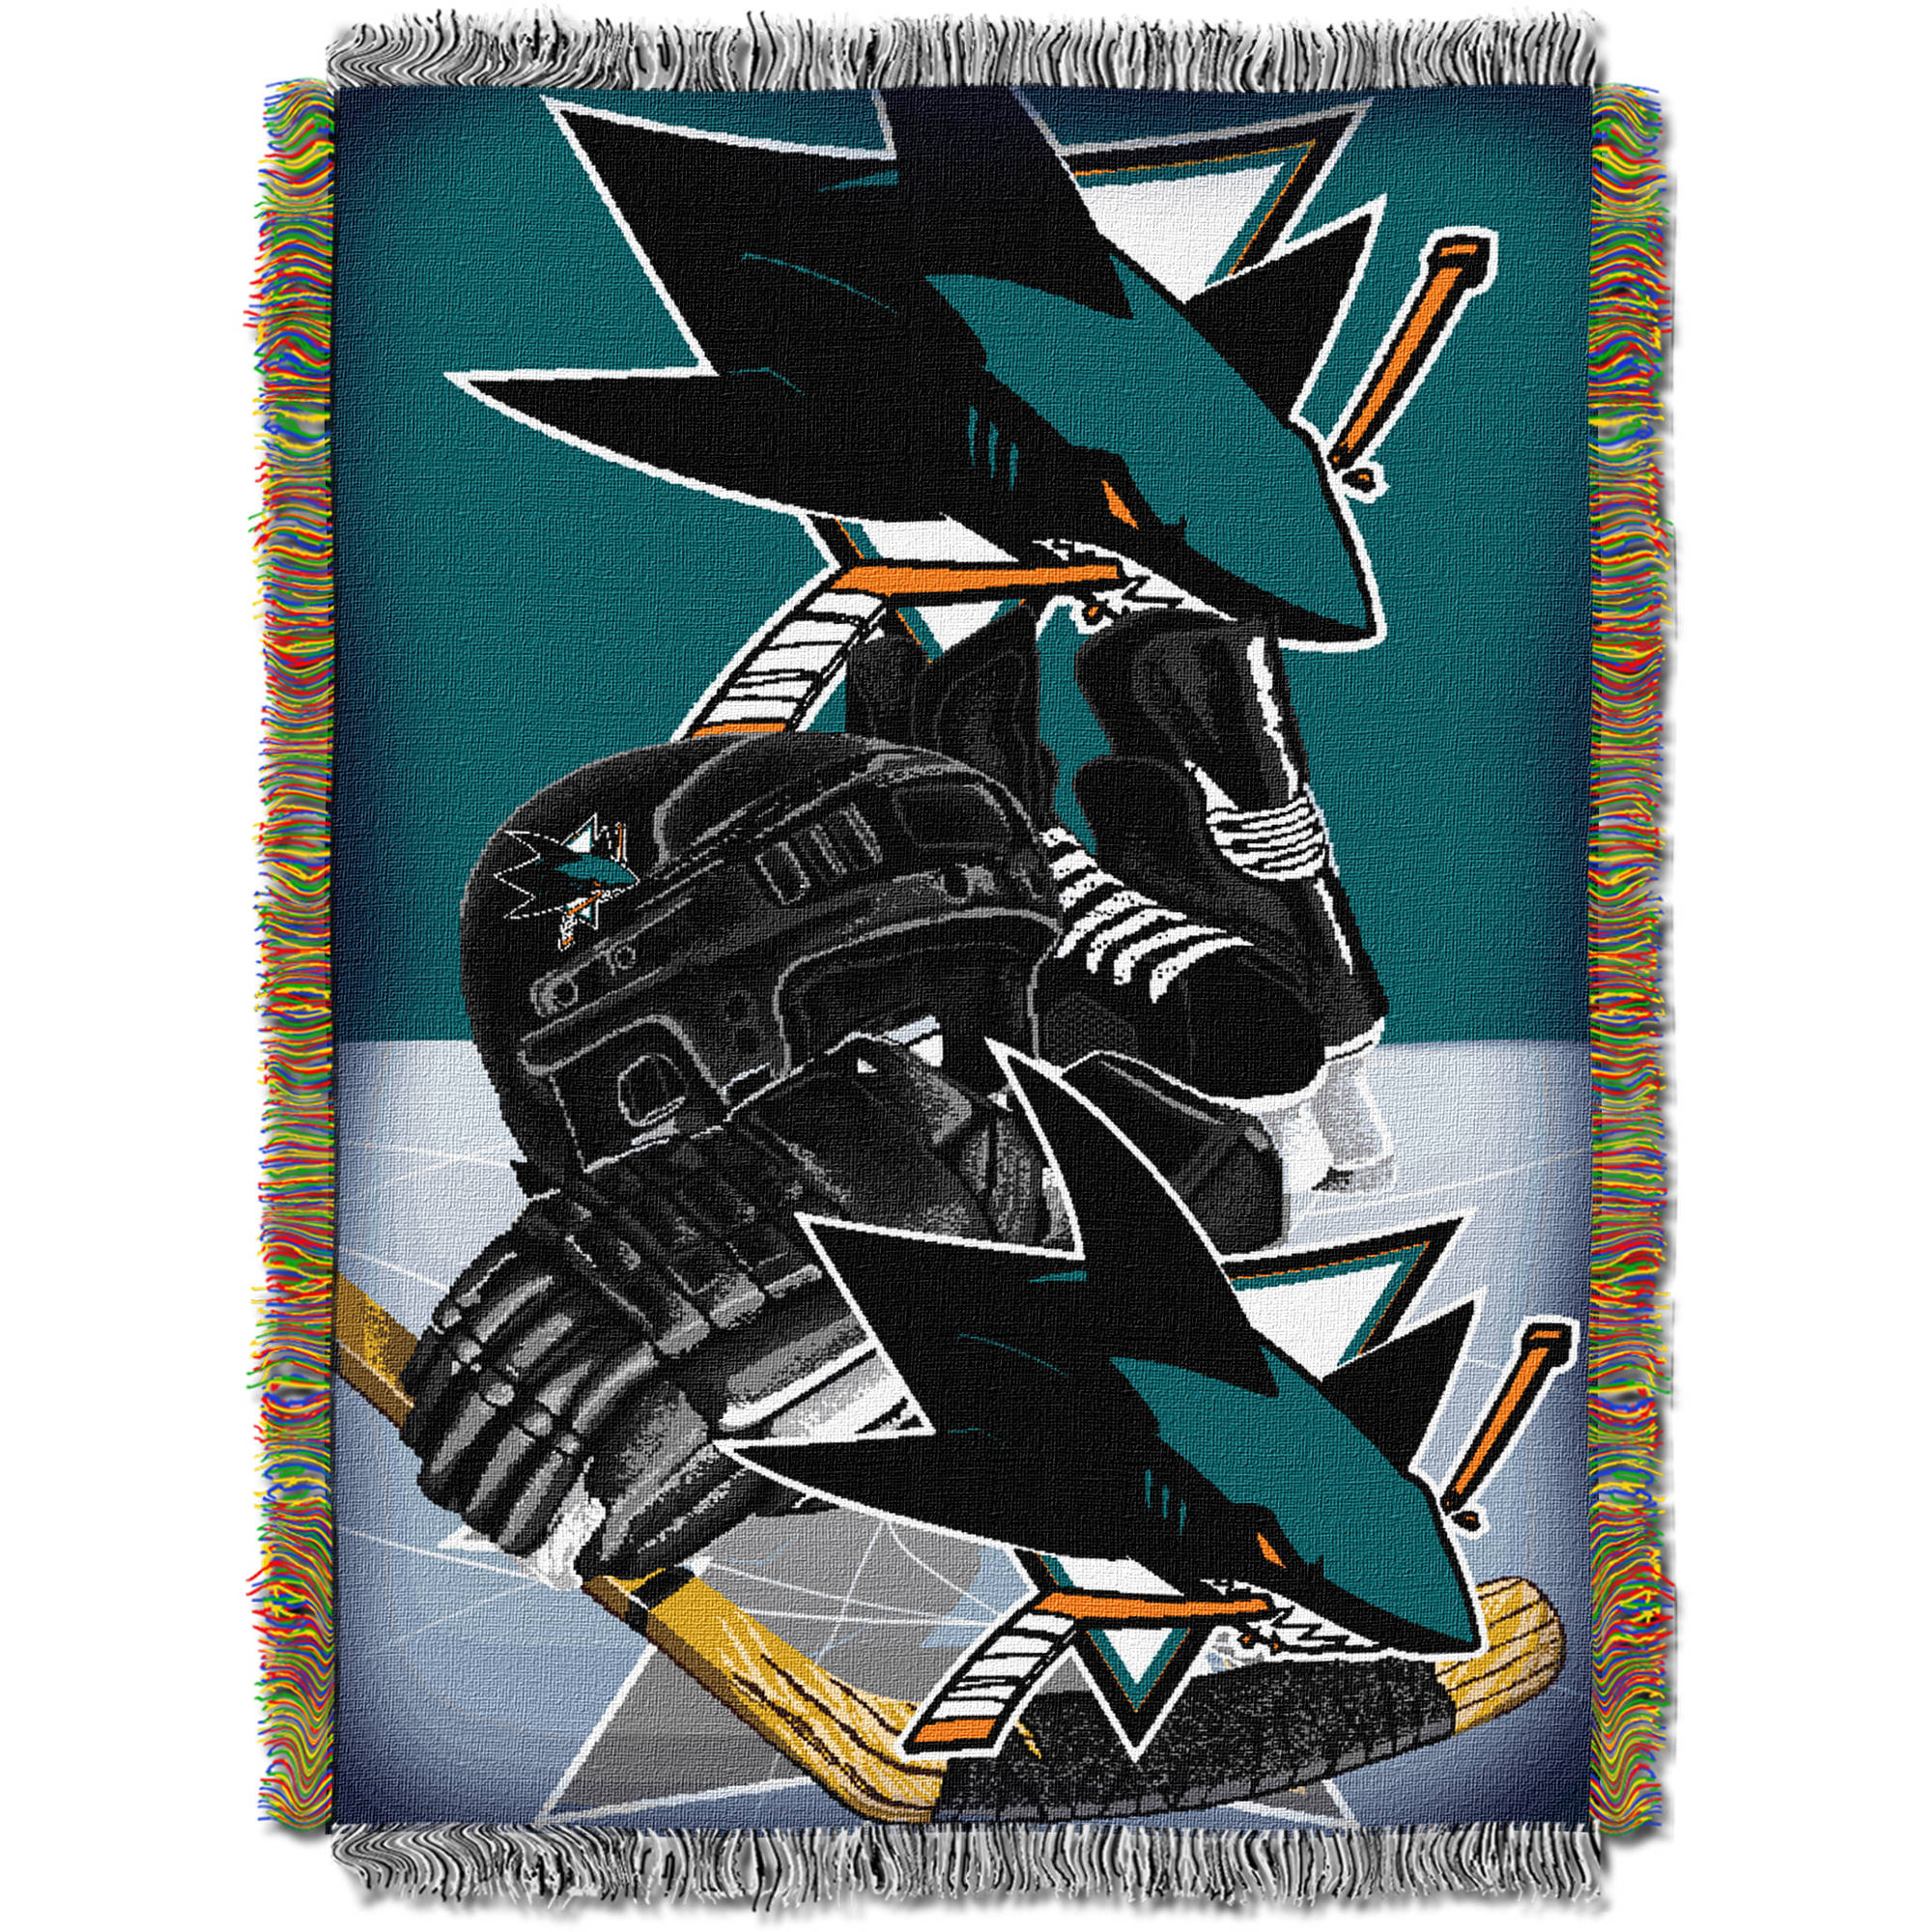 "NHL 48"" x 60"" Home Ice Advantage Series Tapestry Throw, Sharks"